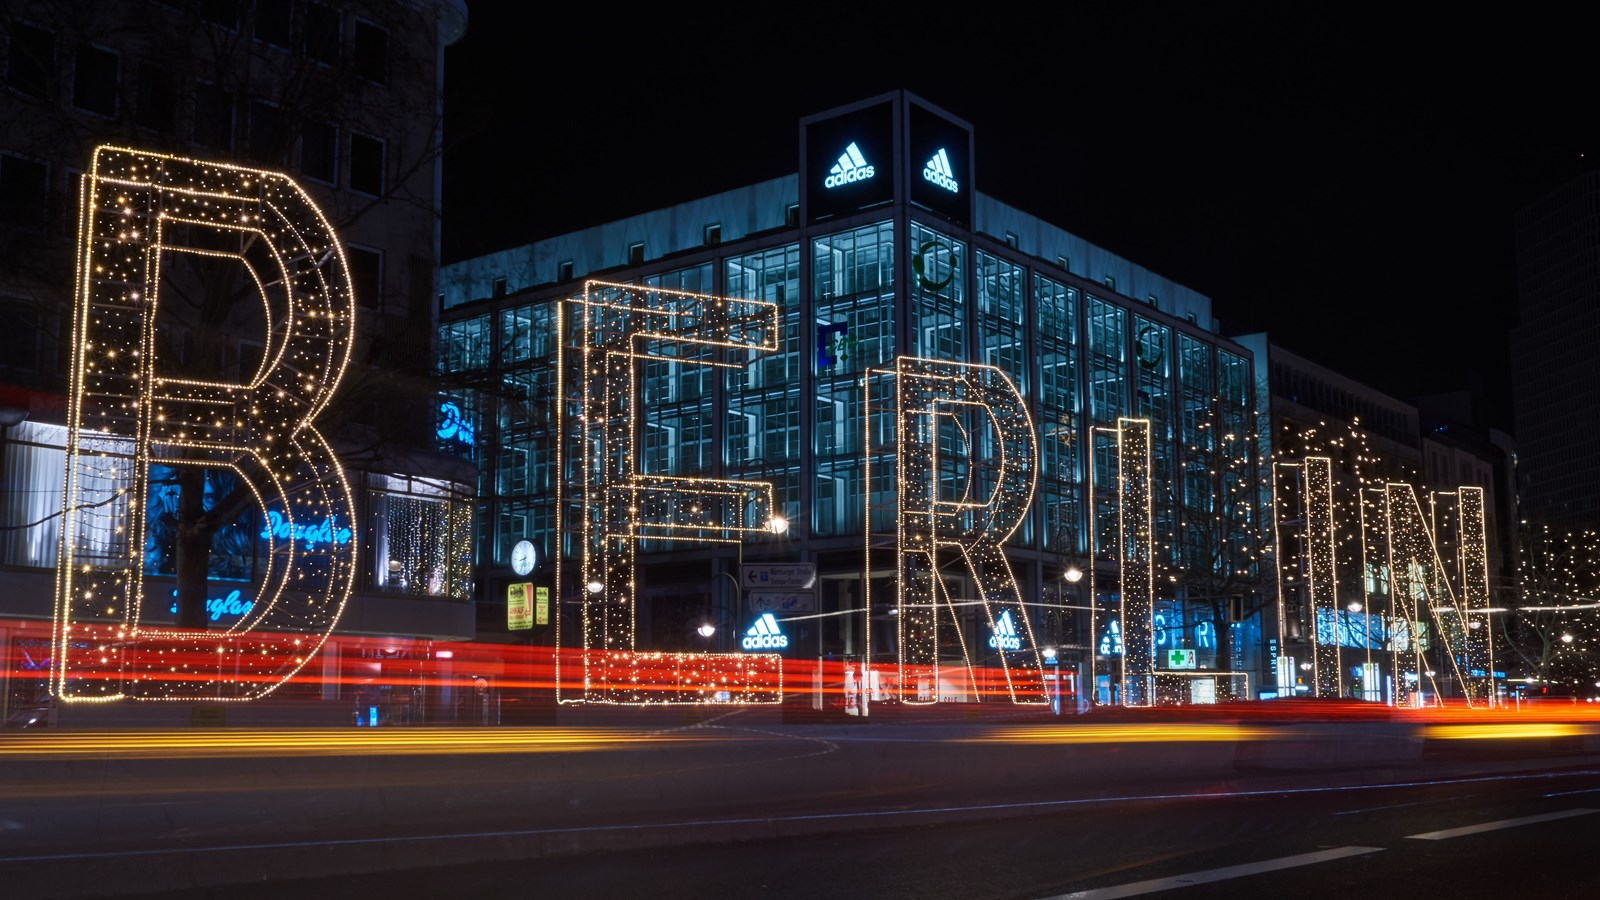 levin-1275485-unsplash - BERLIN at night with lights - CAN USE.jpg